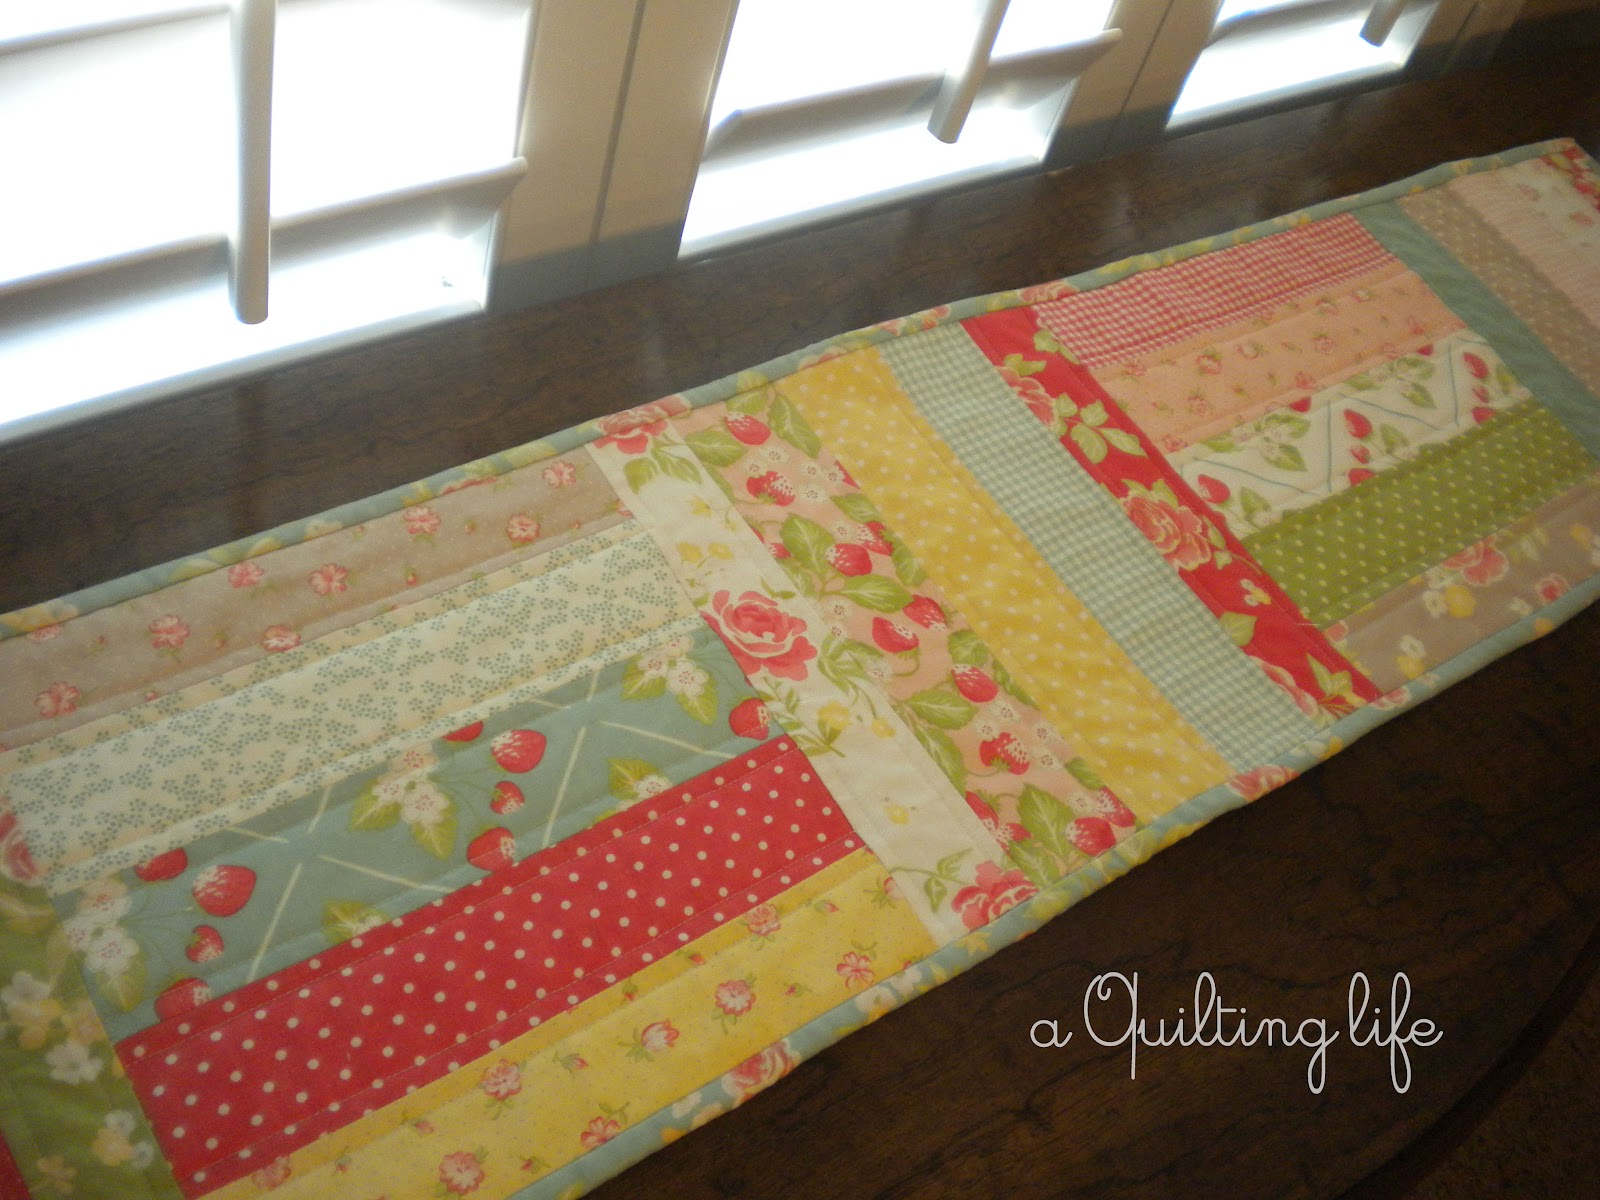 How to sew a table runner - I D Had This Idea In Mind For Some Time Mostly Because I Had Quite A Few Scraps I Wanted To Use Up For A Summer Table Runner This Runner Pattern Is